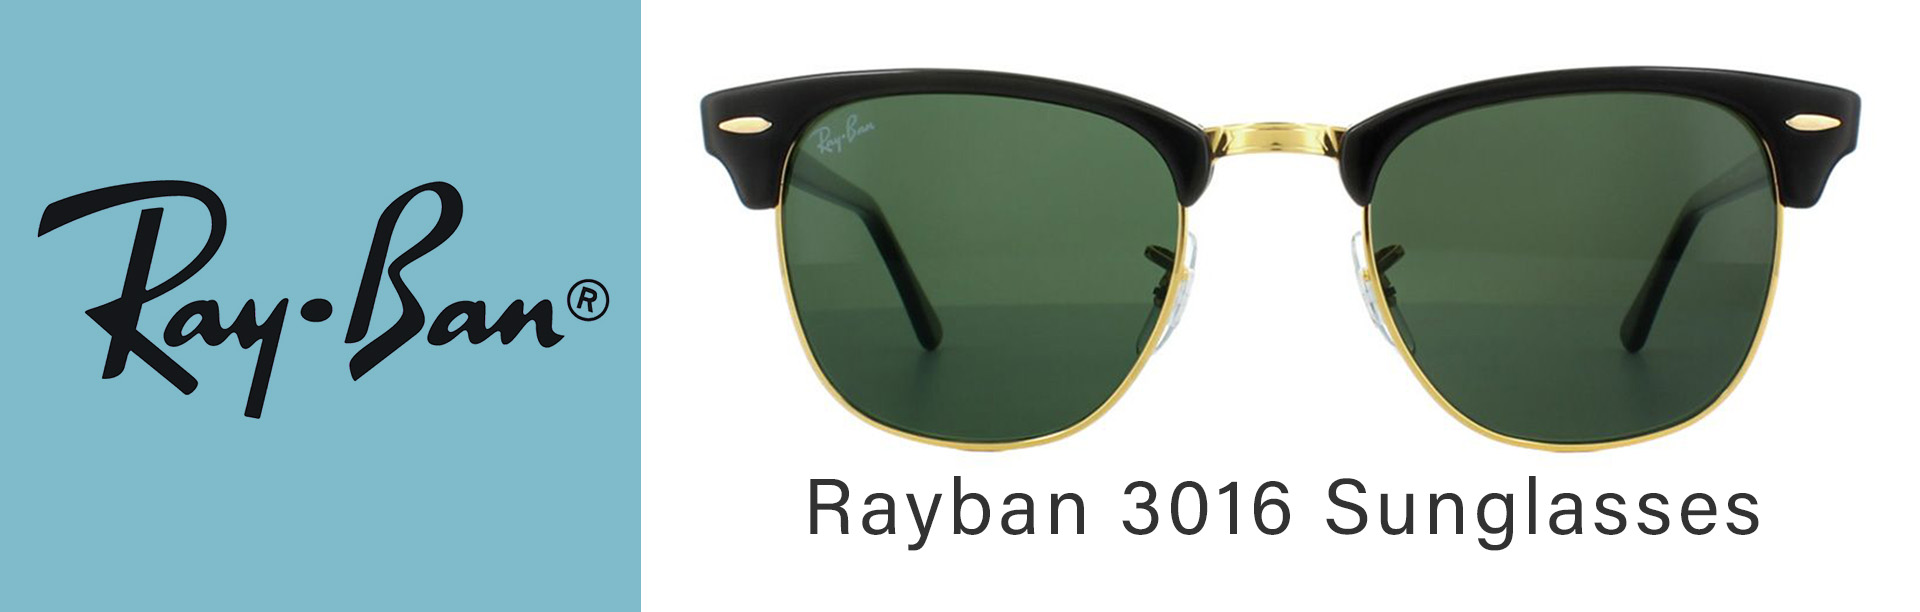 Ray-Ban Clubmaster Sunglasses Review Banner | EyeWearThese.com